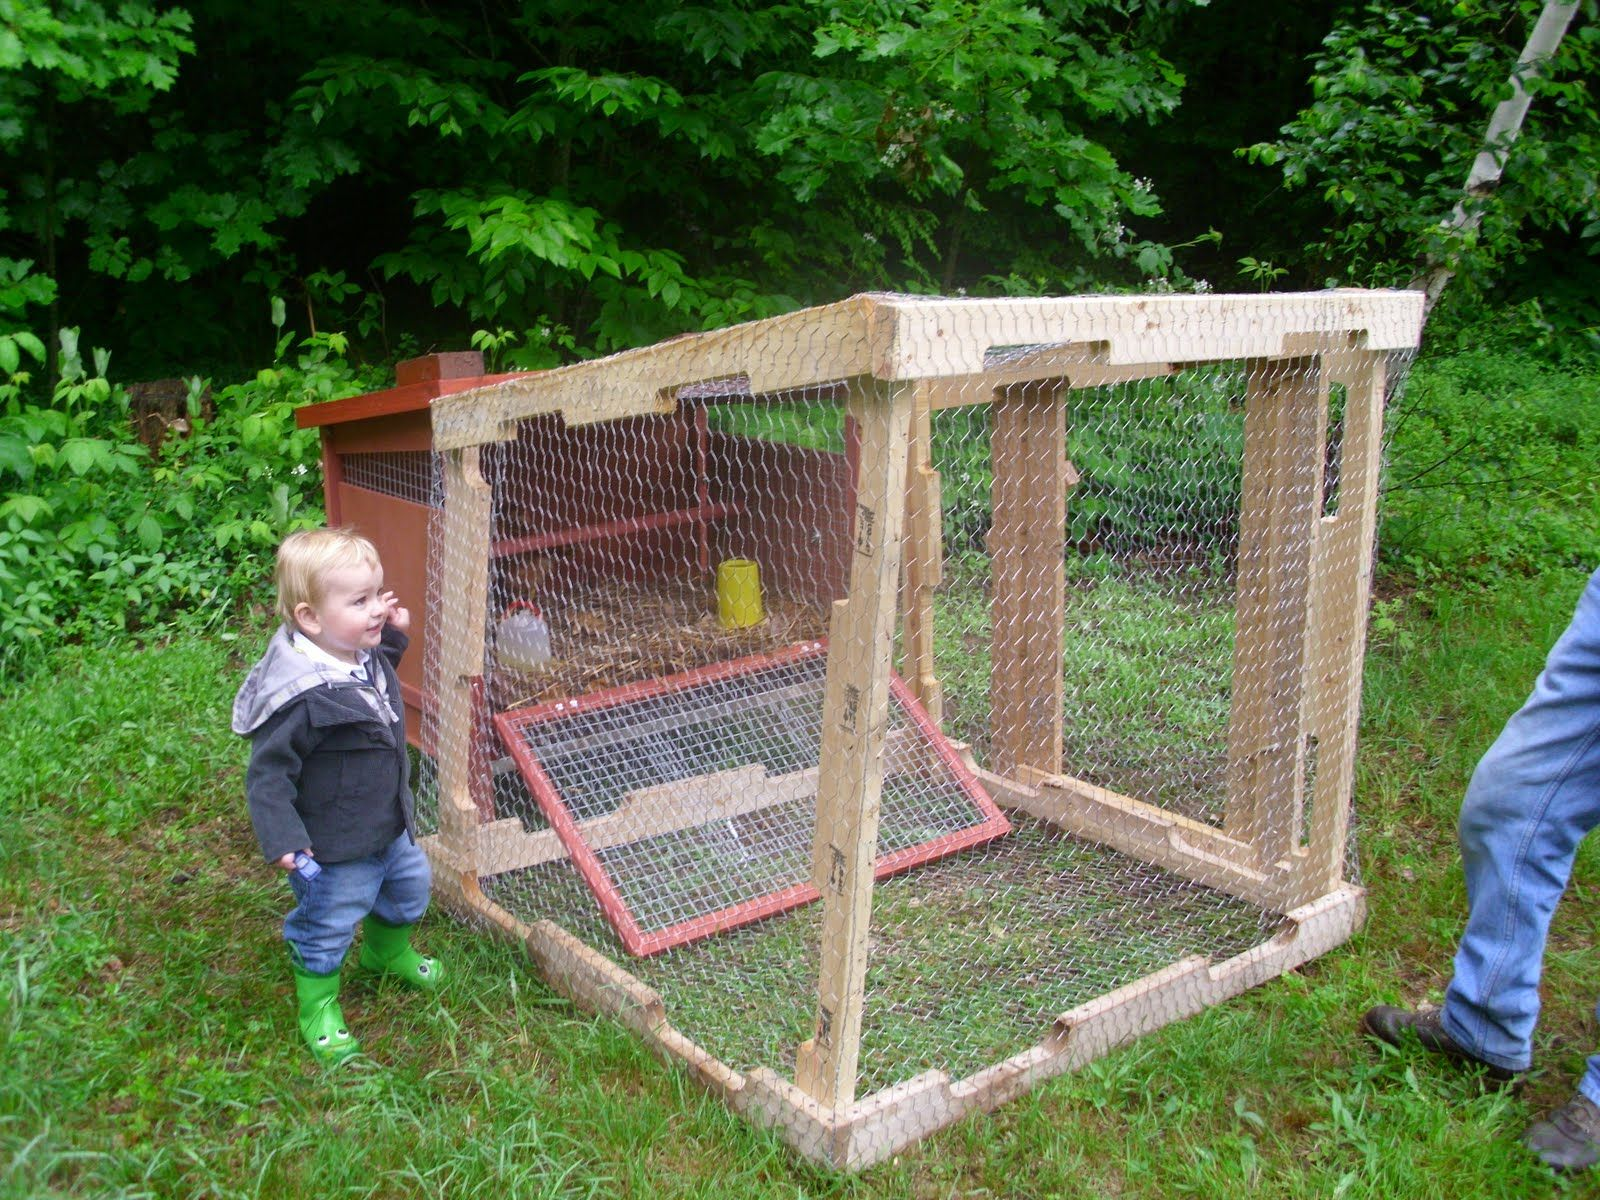 Pallet Chicken Coop 100 For The Coop At Tractor Supply Free Run Made With Recycled Pallet With Images Chicken Coop Pallets Chicken Coop Garden Chicken Coop Designs